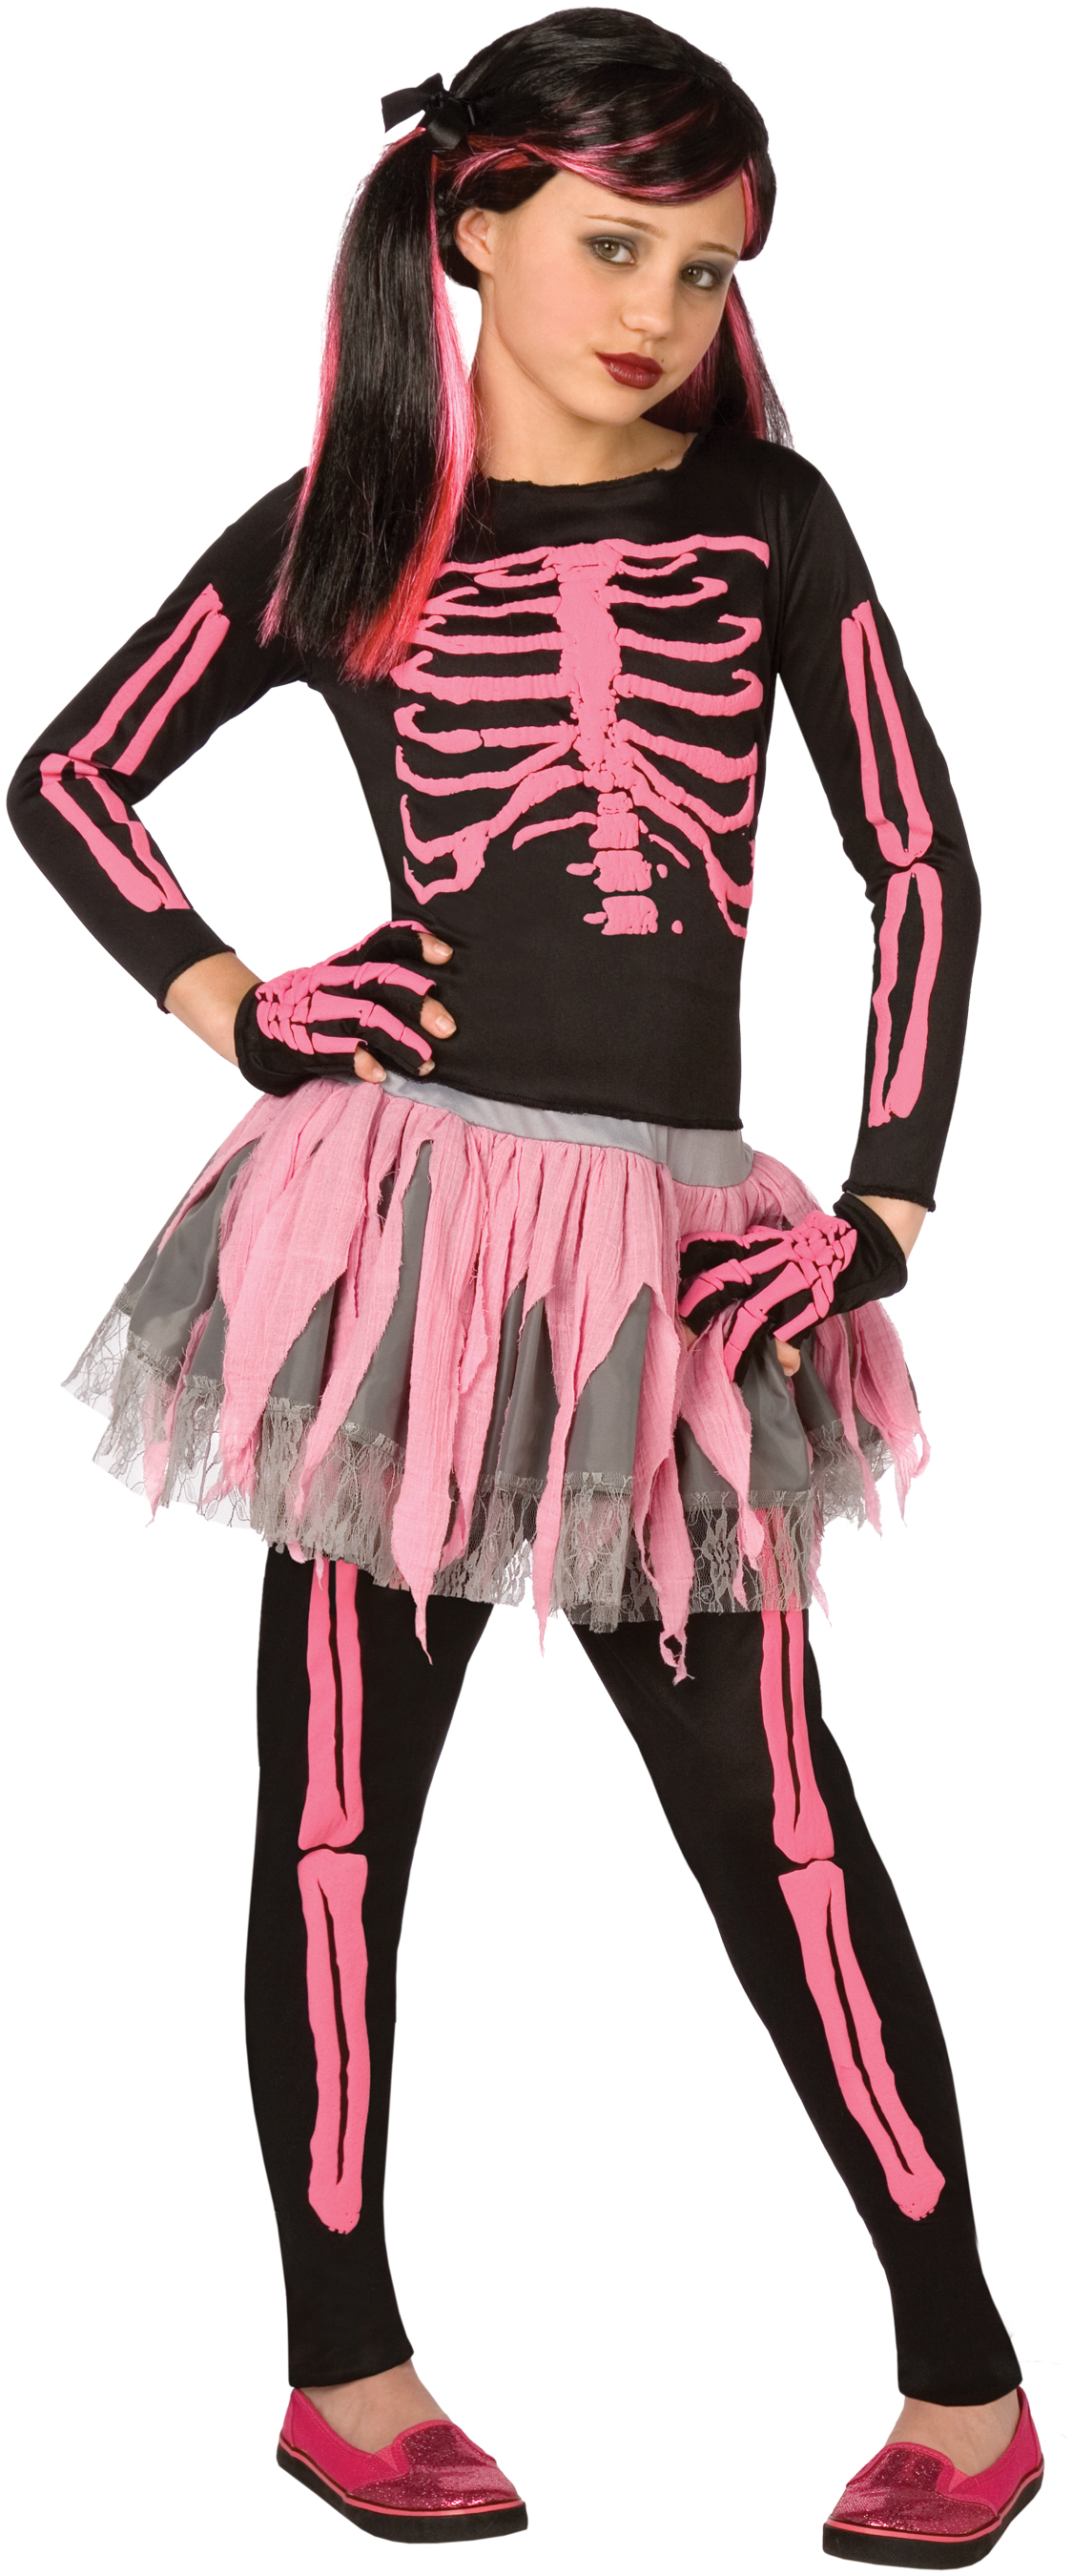 http://www.partybell.com/p-19491-punk-skeleton-child-costume.aspx